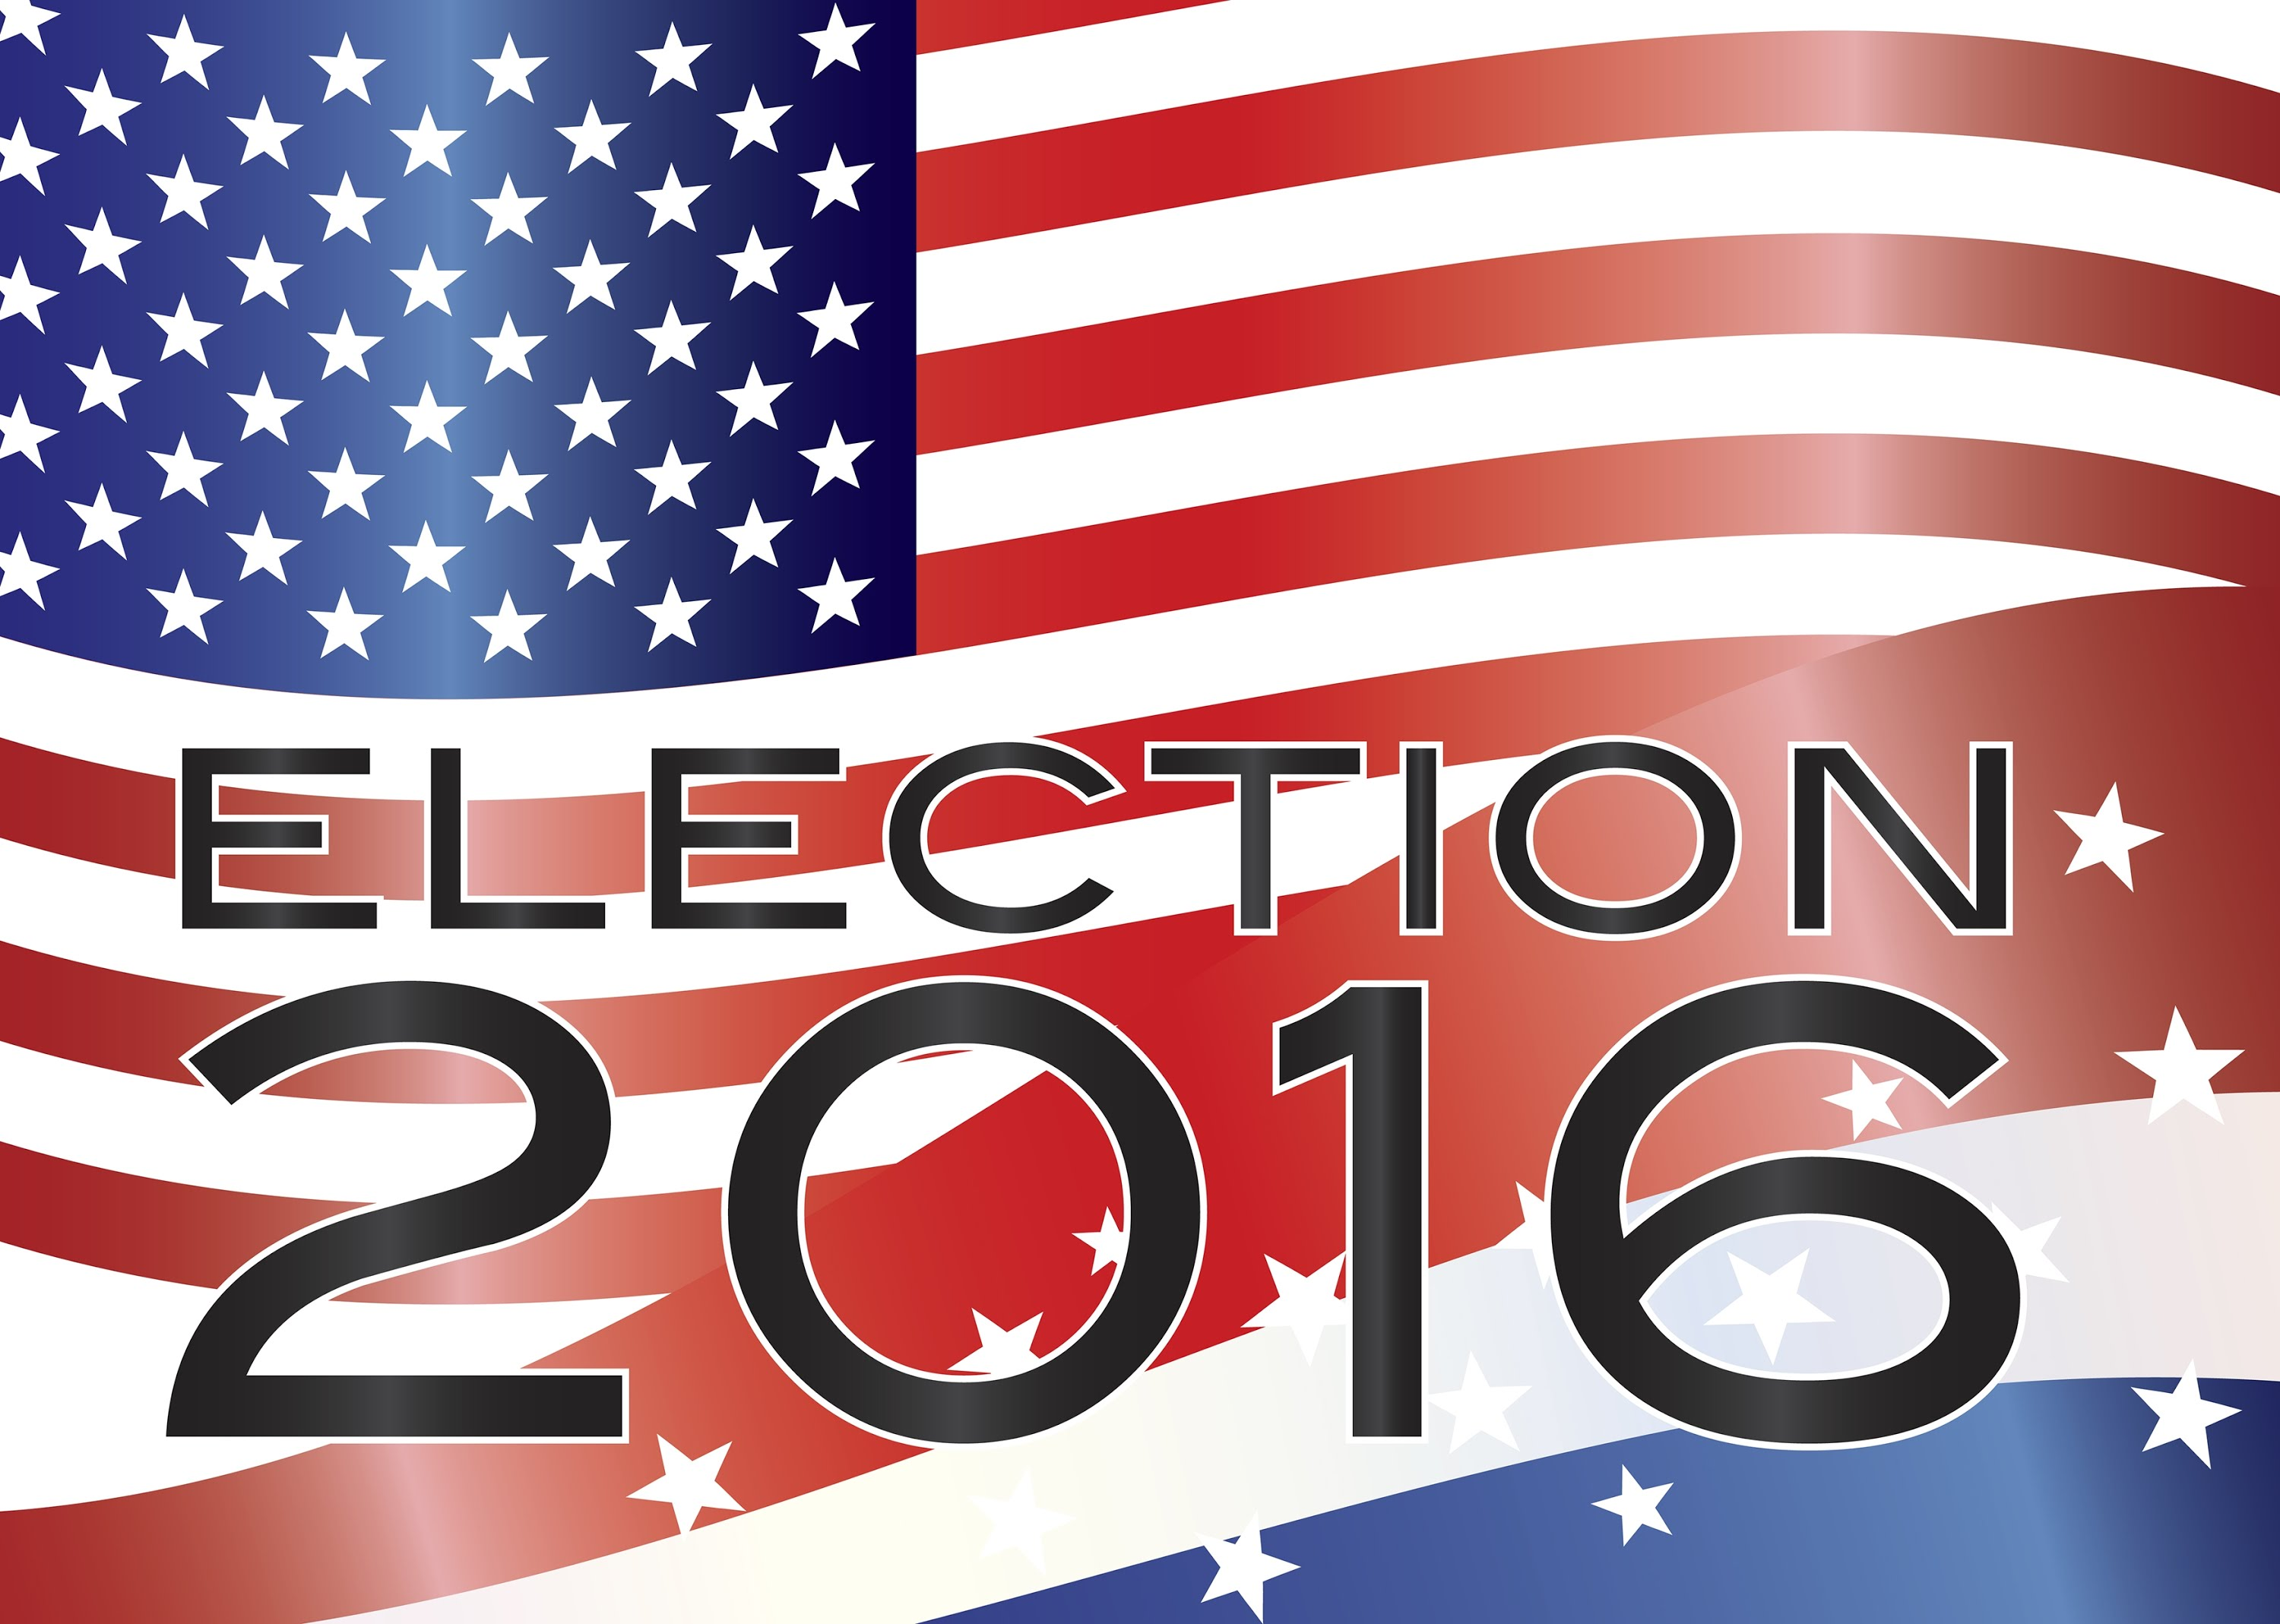 Free Association Election Cliparts, Download Free Clip Art.